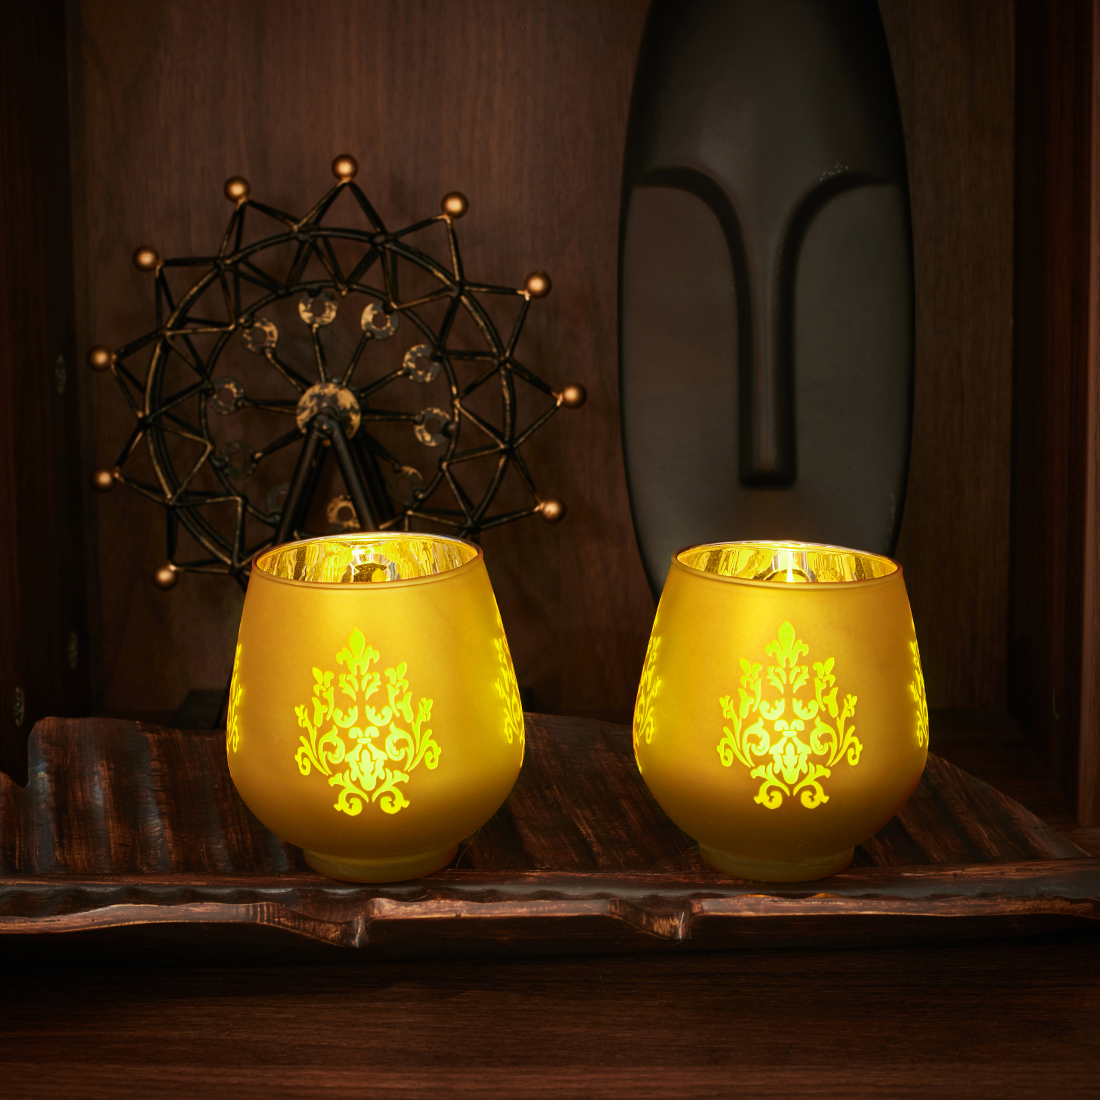 Zahara Set Of 2 Flower Etched Glass Candle Holders in GOLD Colour by Living Essence